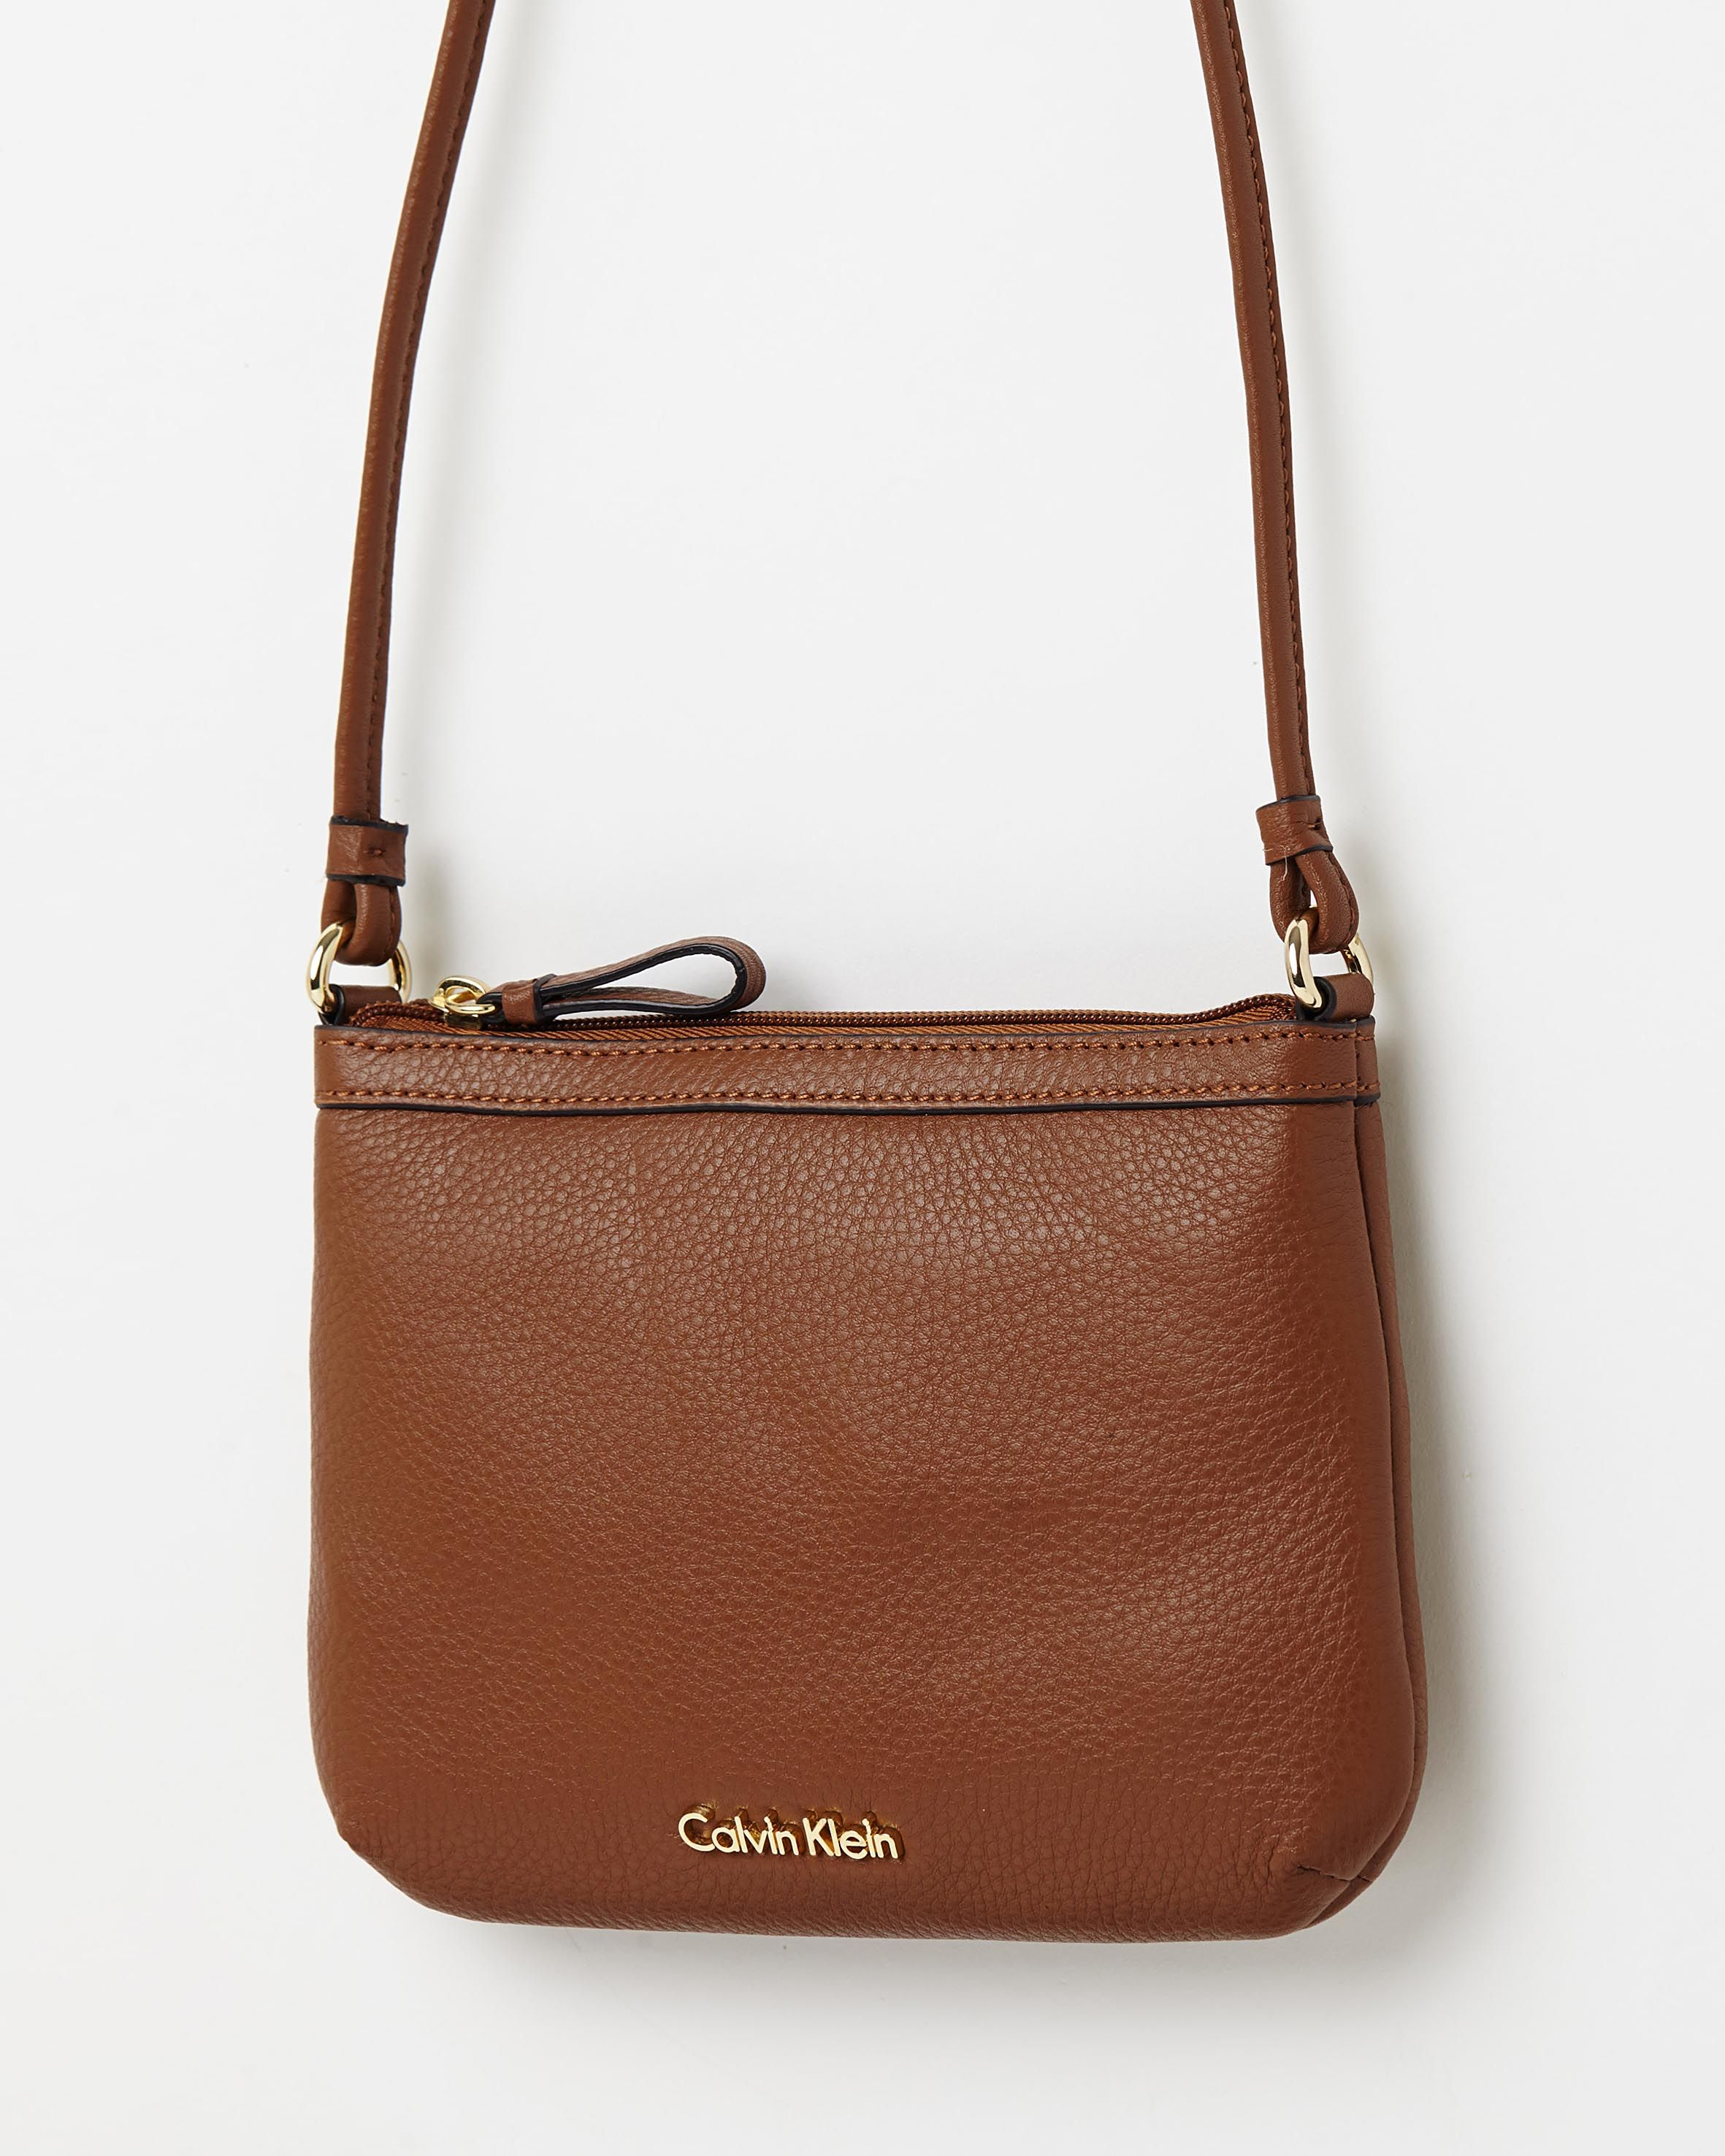 Key Item Pebble Leather Cross Body Bag By Calvin Klein Online The Iconic Australia